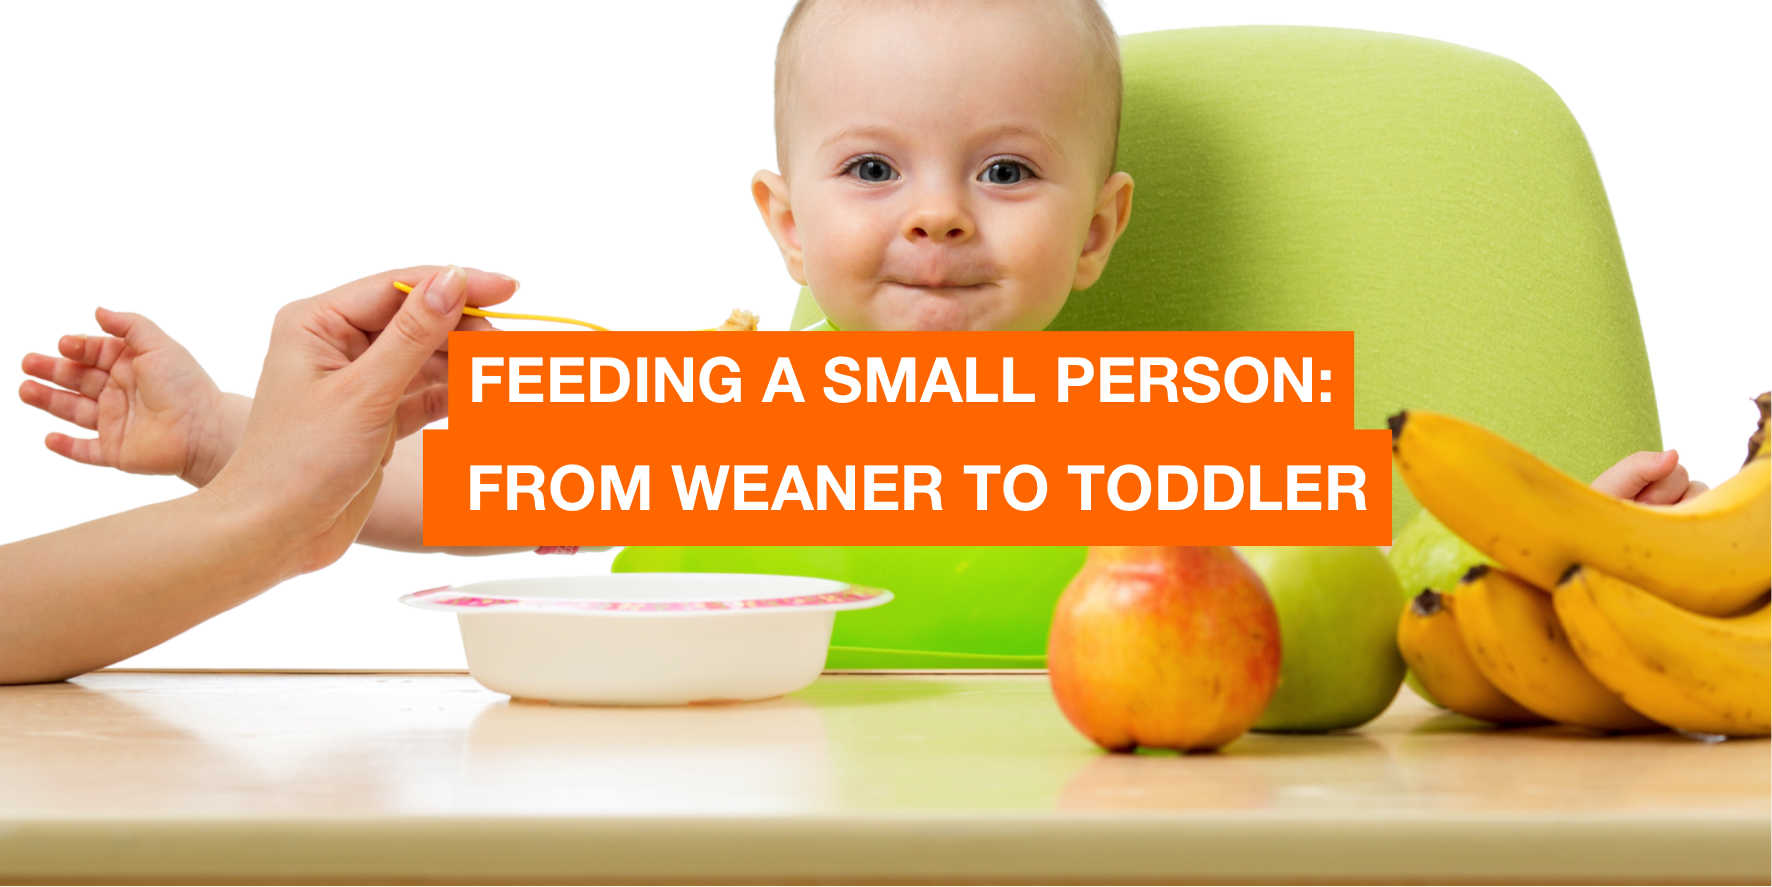 Feeding a small person, from weaner to toddler